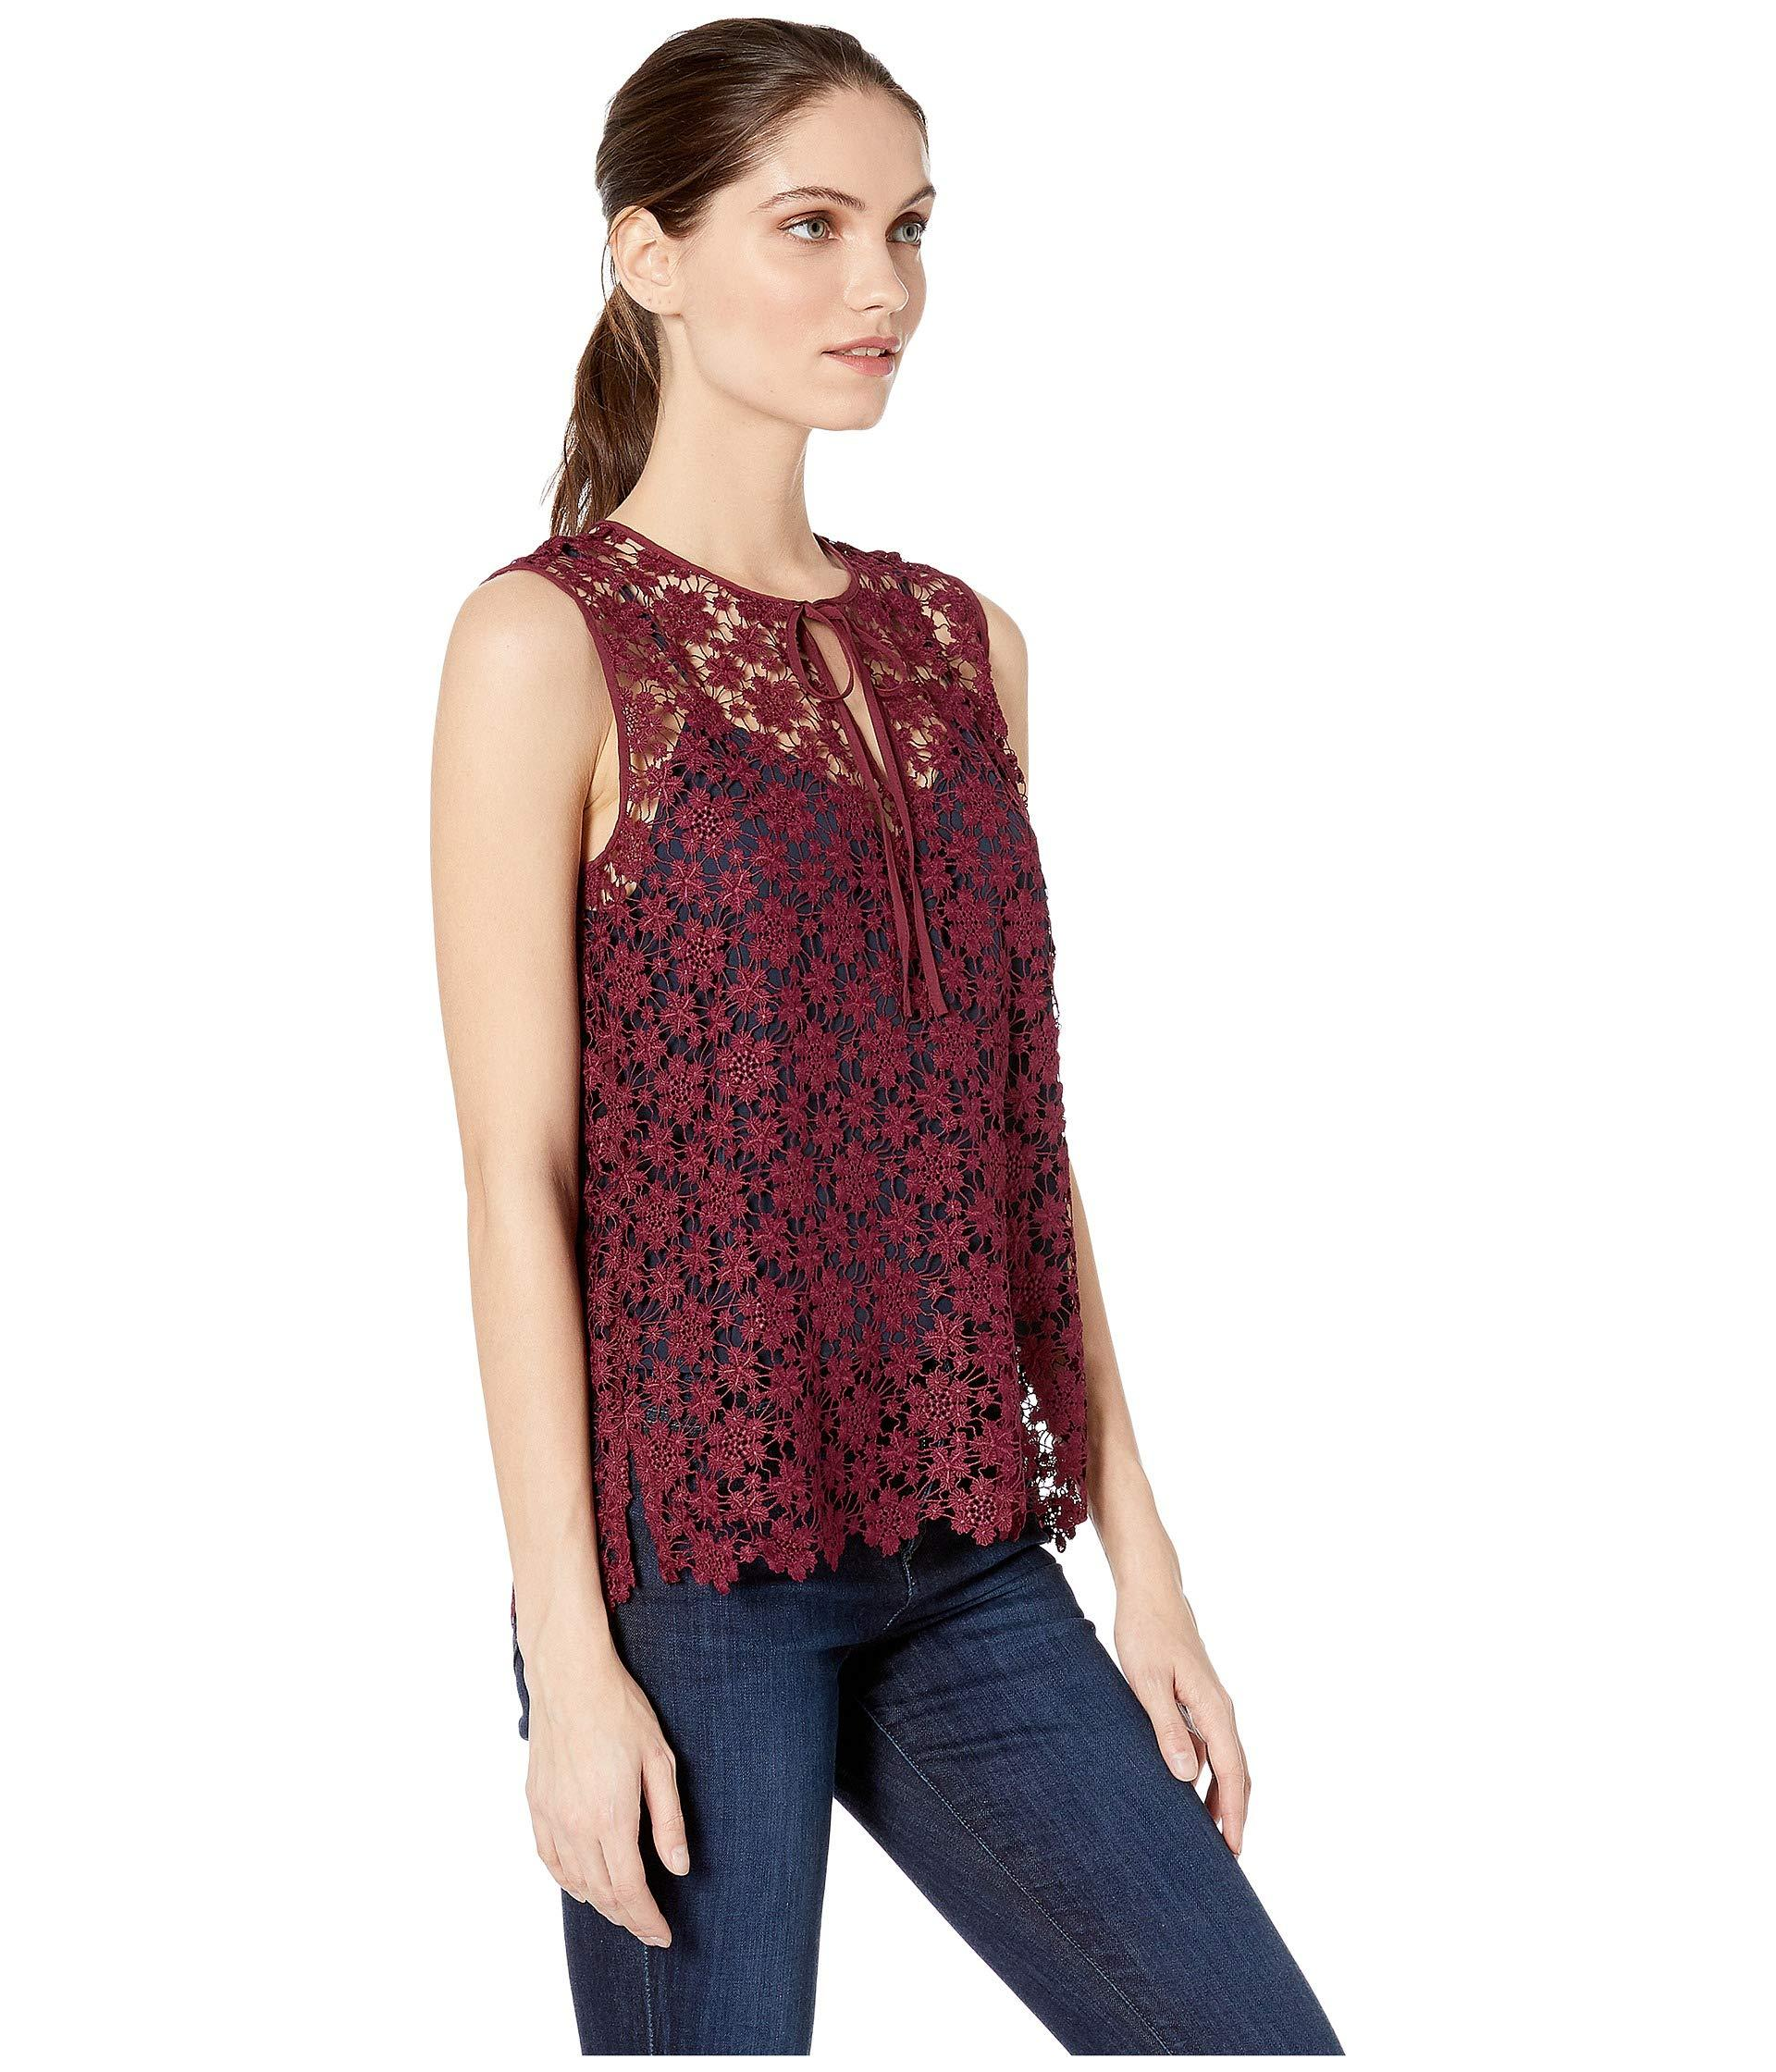 d51e00d420847 Juicy Couture - Red Lydia Guipure Lace Sleeveless Top - Lyst. View  fullscreen